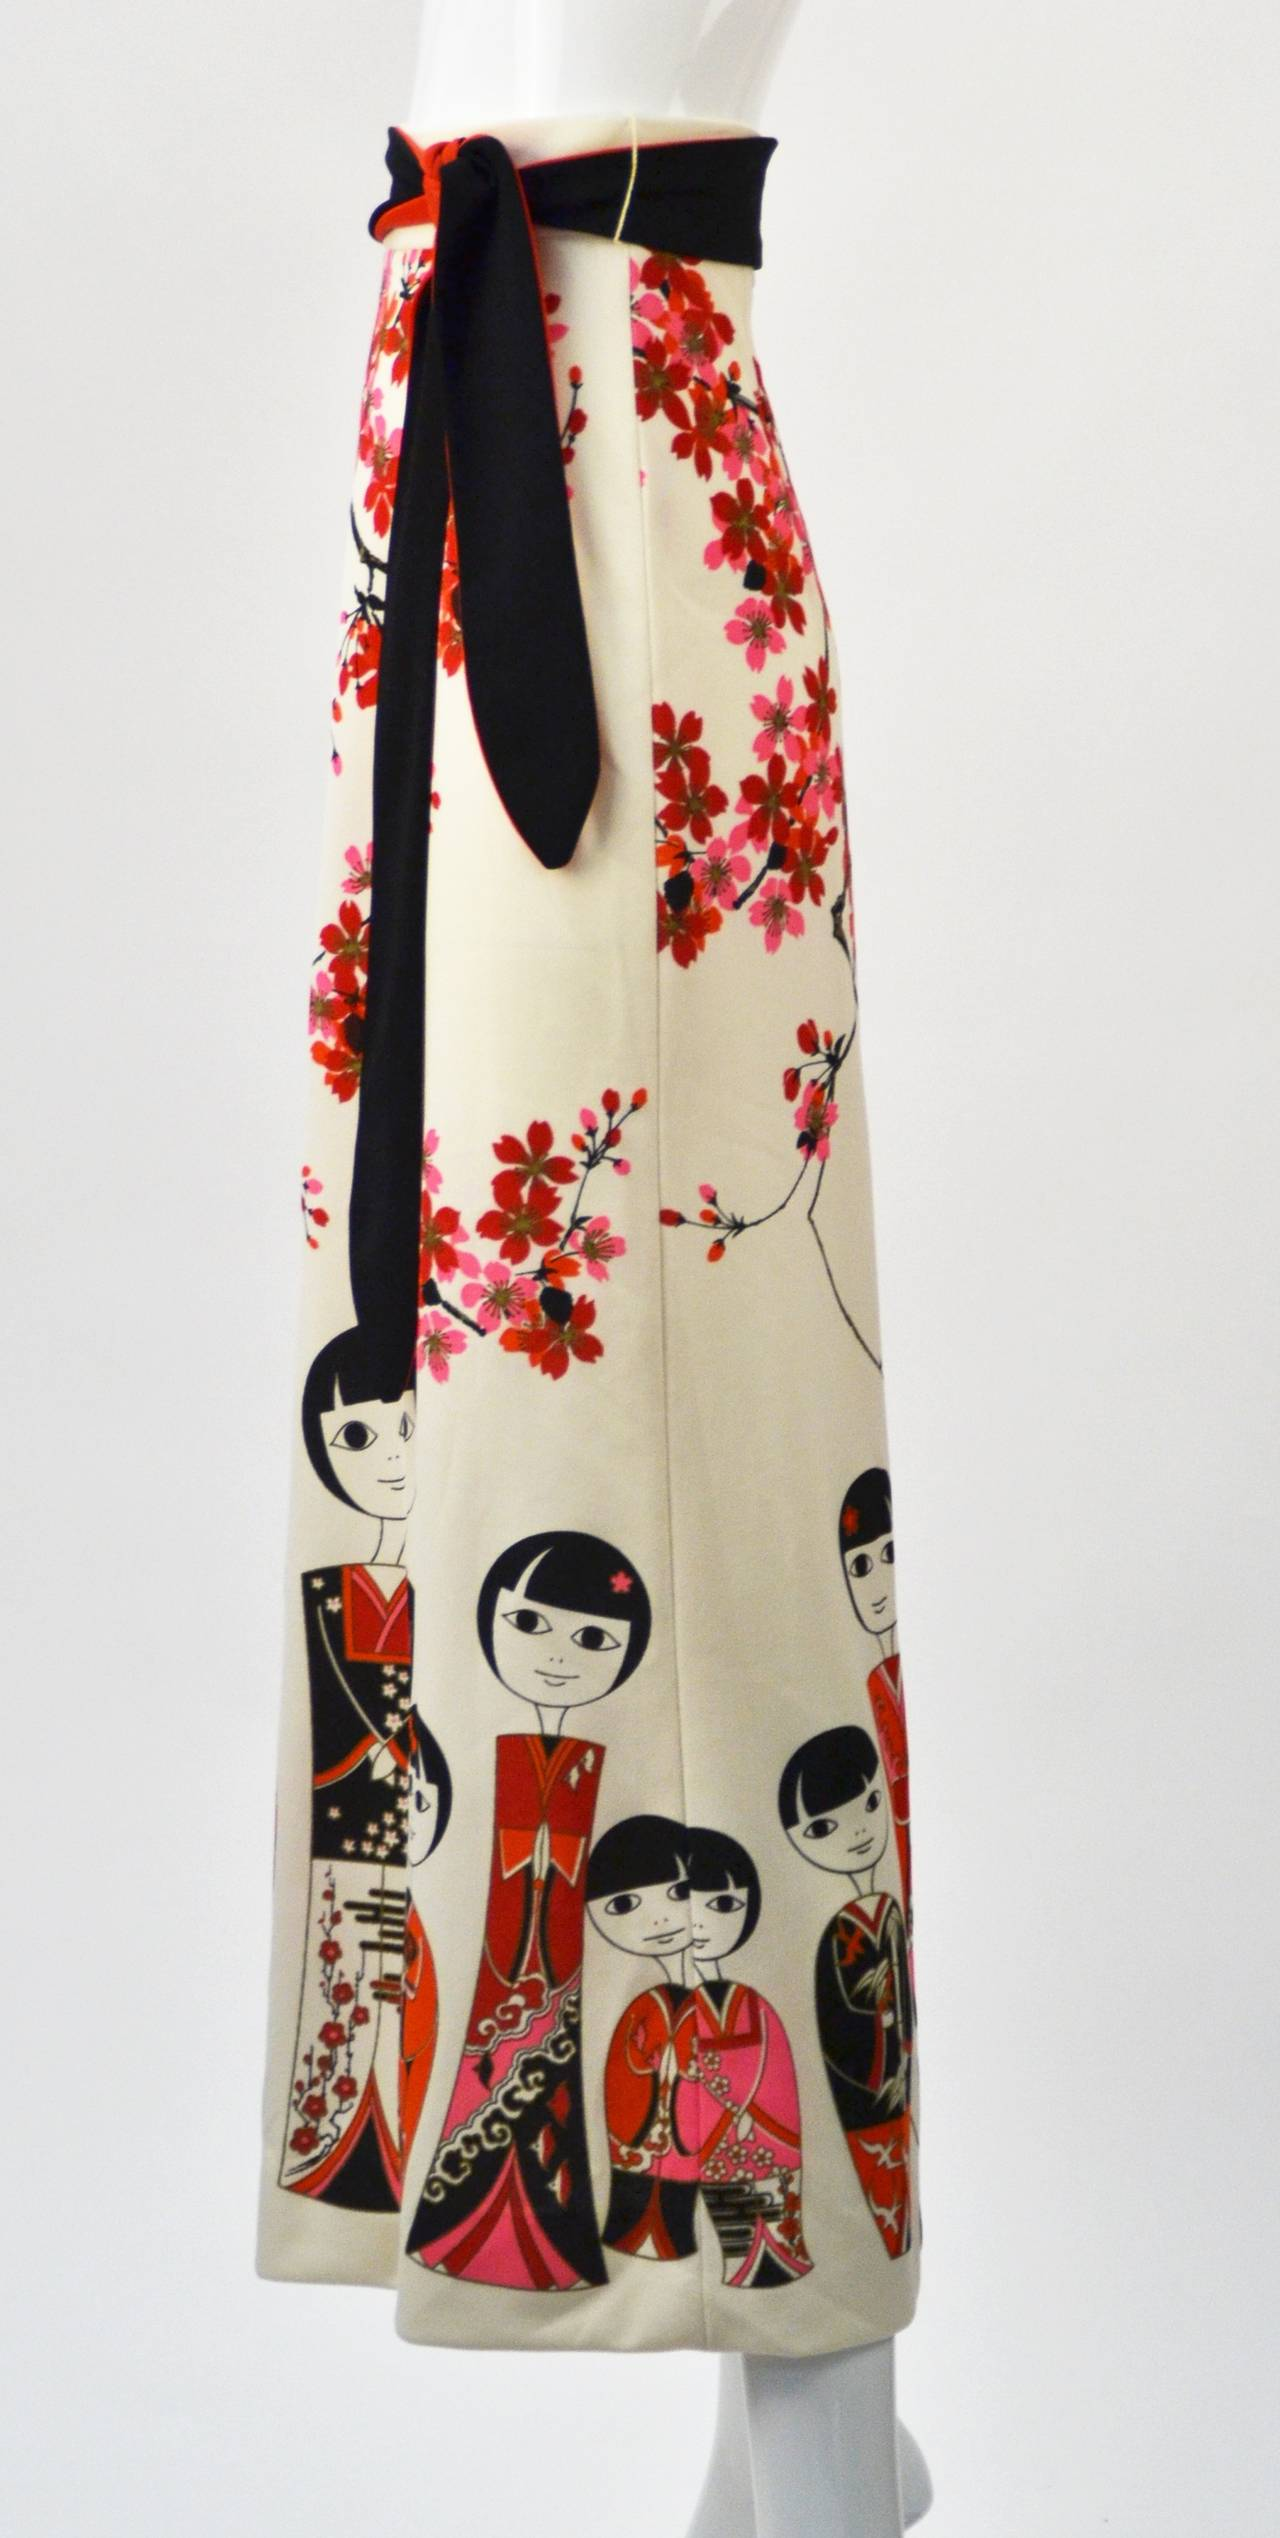 Fantastic 1960's print Miss Shaheen Japanese Kokeshi Doll border print maxi skirt with obi belt. Brilliant print by the master of Hawaiian print design, Alfred Shaheen.  The colors are vibrant and pop against the skirt's white background.  Shaheen's